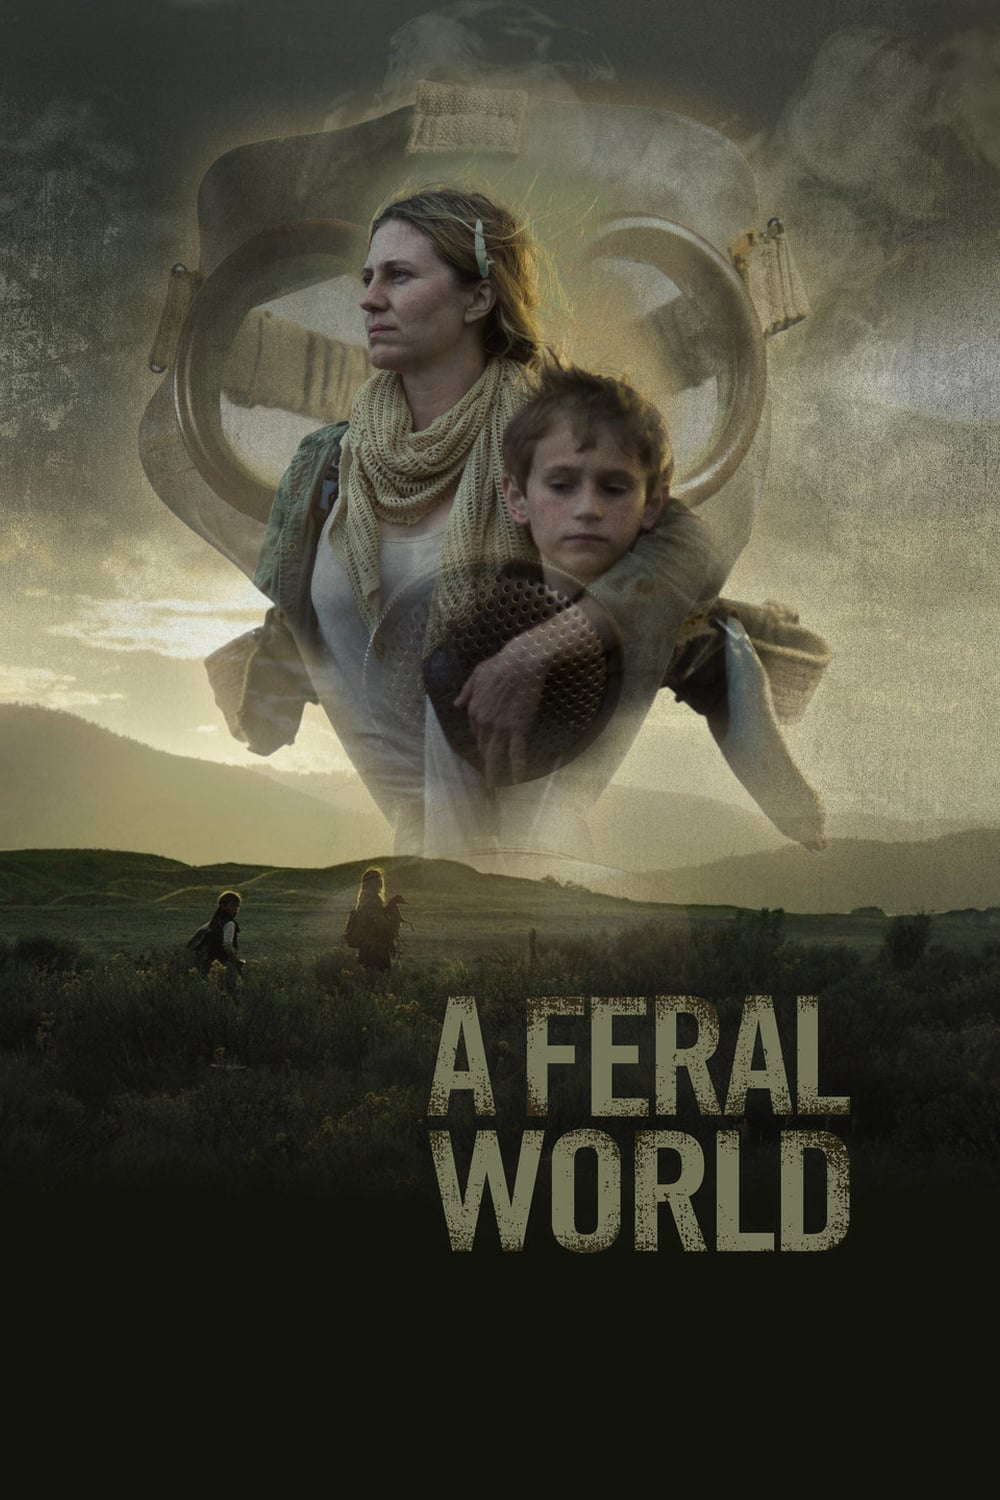 download or watch A Feral World full movie online free Openload